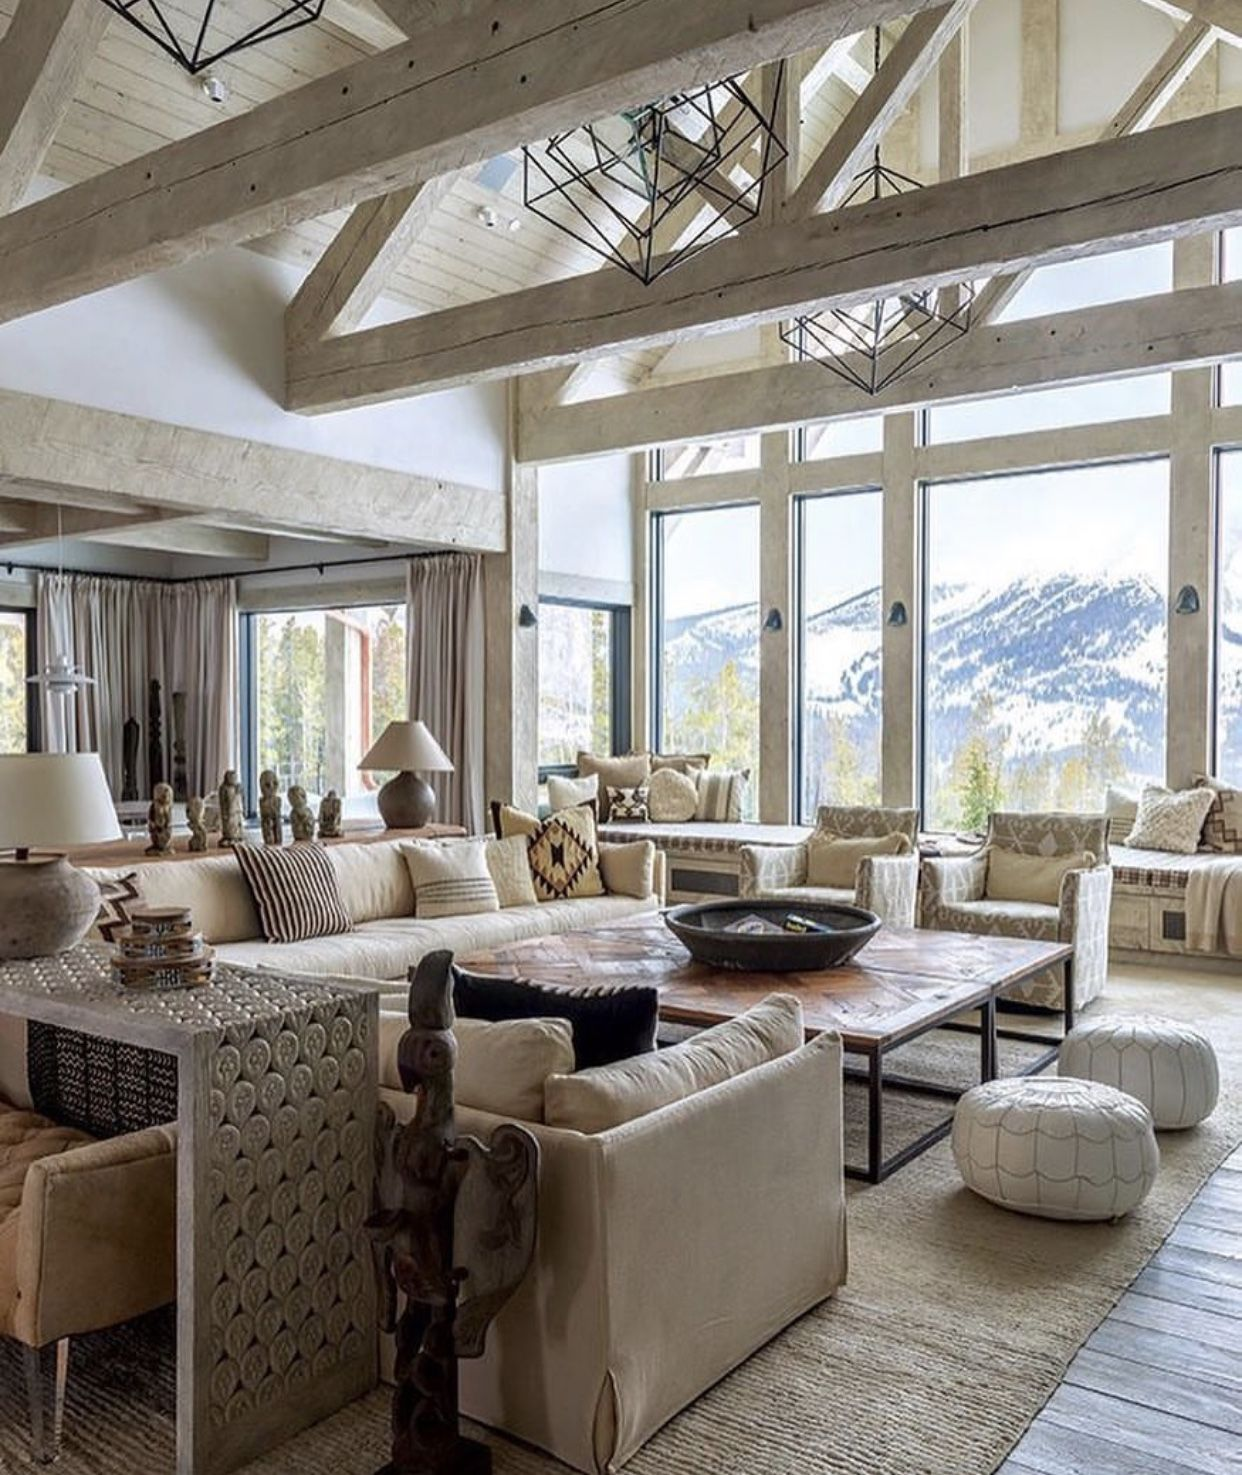 Vaulted ceiling living room image by Danielle Punkryte on ...